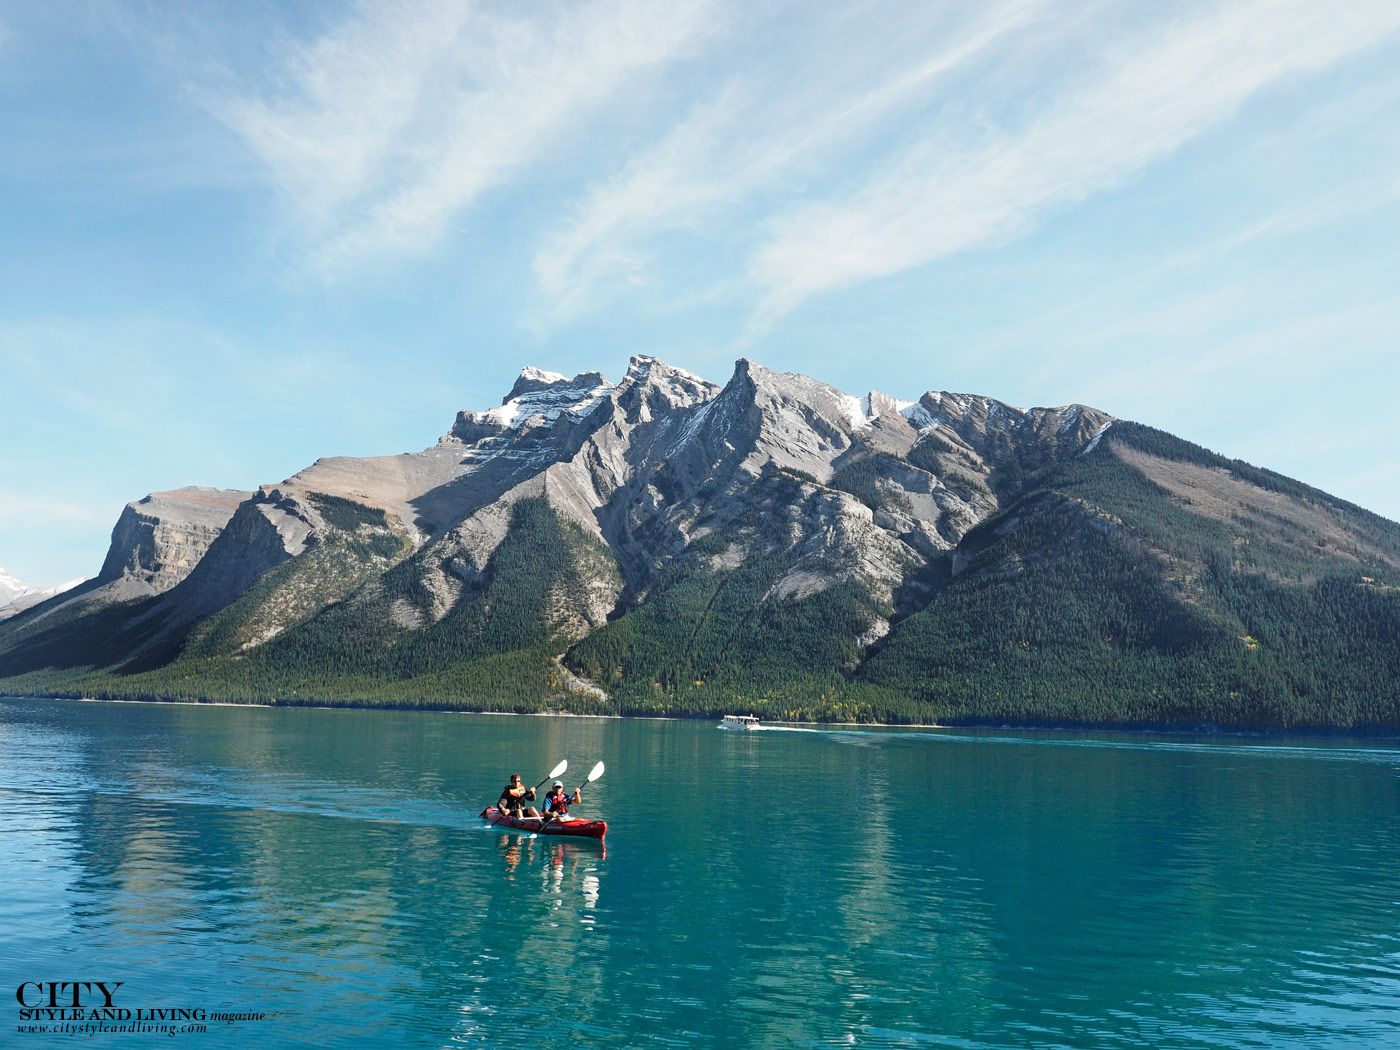 City Style and Living Magazine Spring Road Trip Rocky Mountain Road Trip Alberta Canoe on Lake Minnewanka